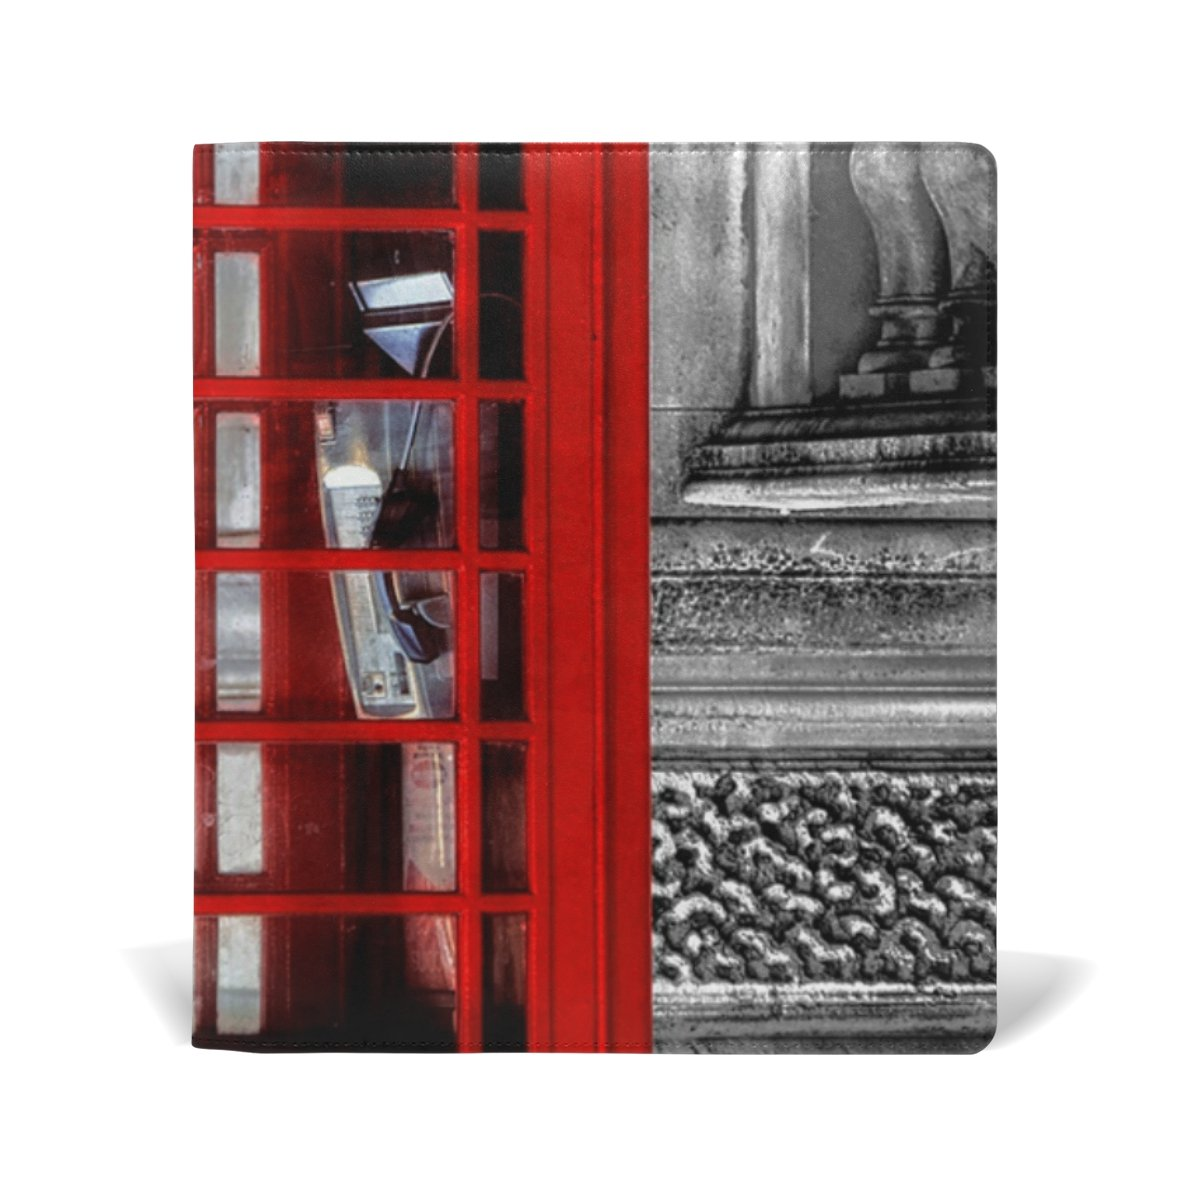 Telephone Booth Stretchable Genuine Leather Book Covers Standard Size for Student Hardcover Textbooks Fits up to 9x11-Inch for School Girls Boys DIY Gift